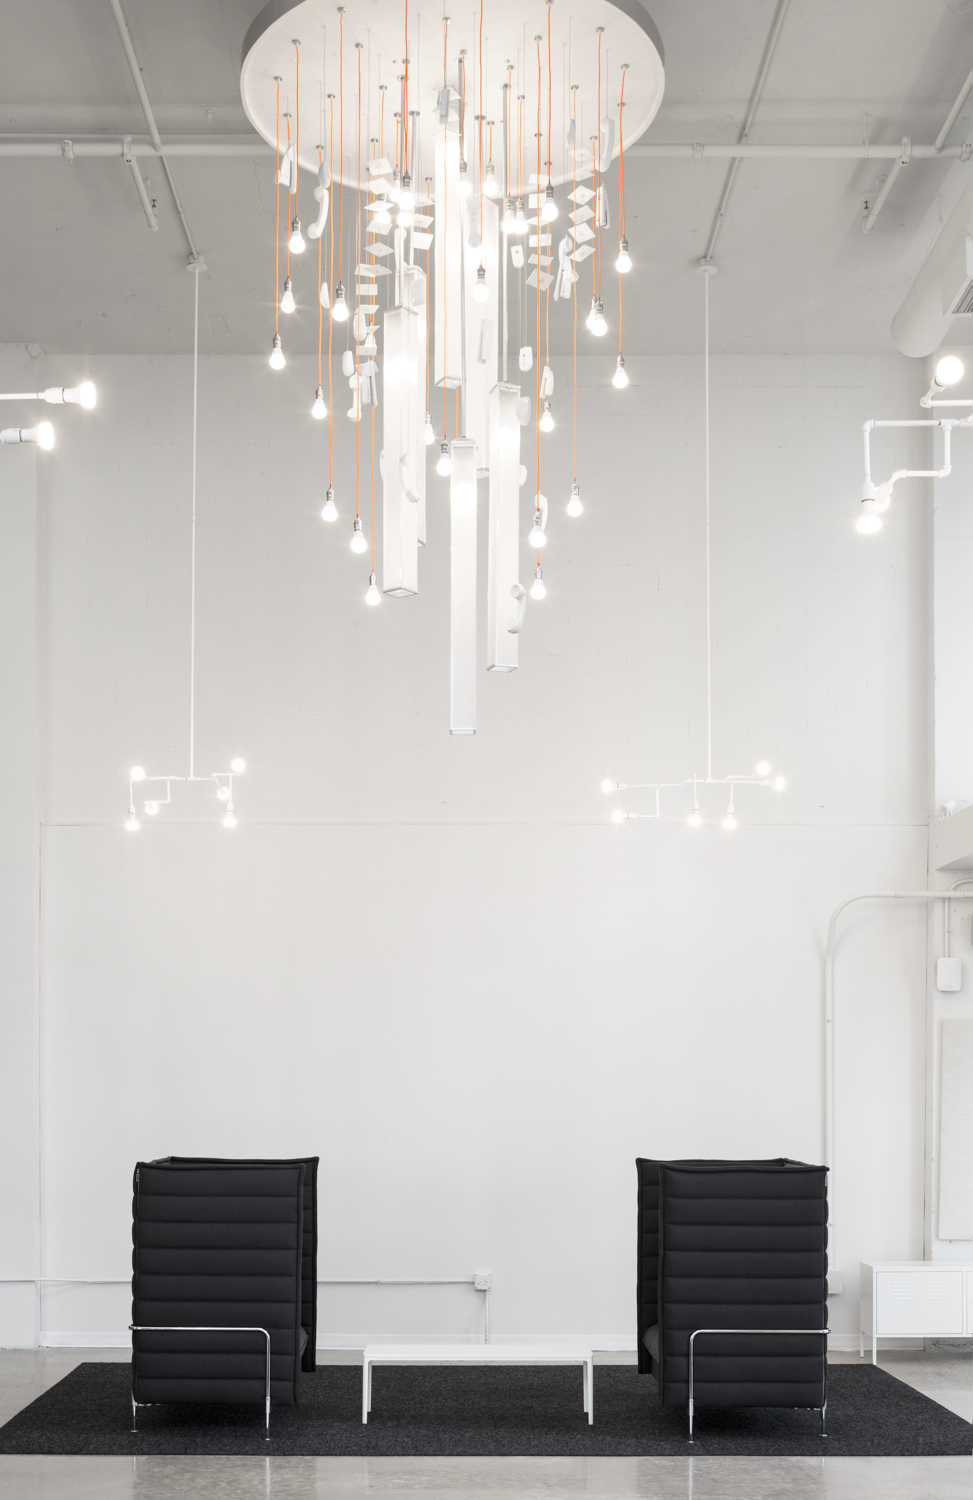 Commercial Interior with Chandelier